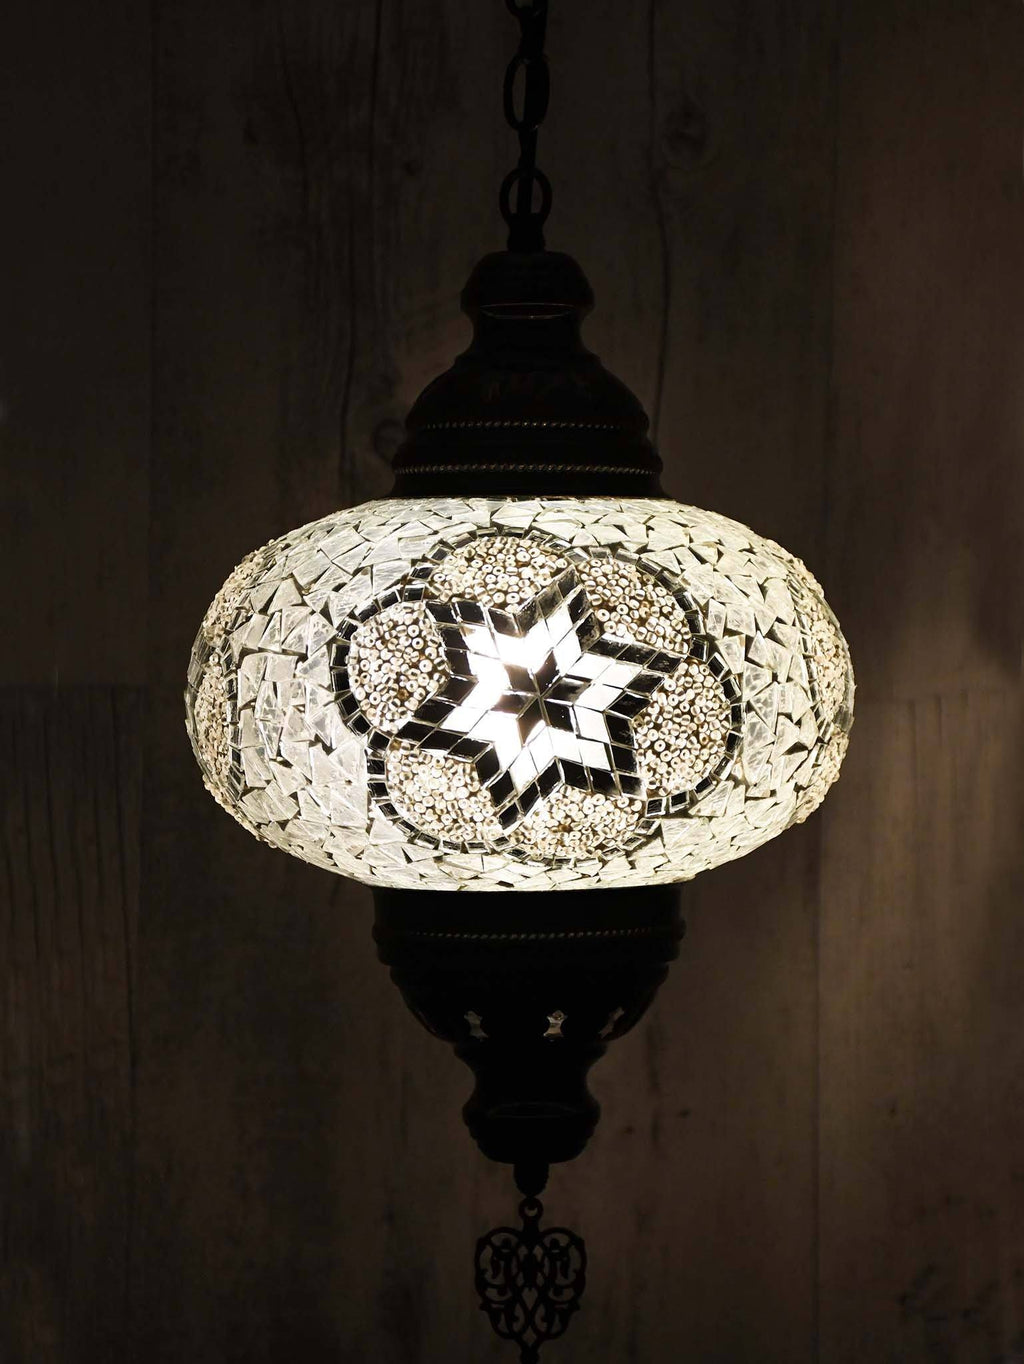 Turkish Clear Ceiling Light Chain Fitting